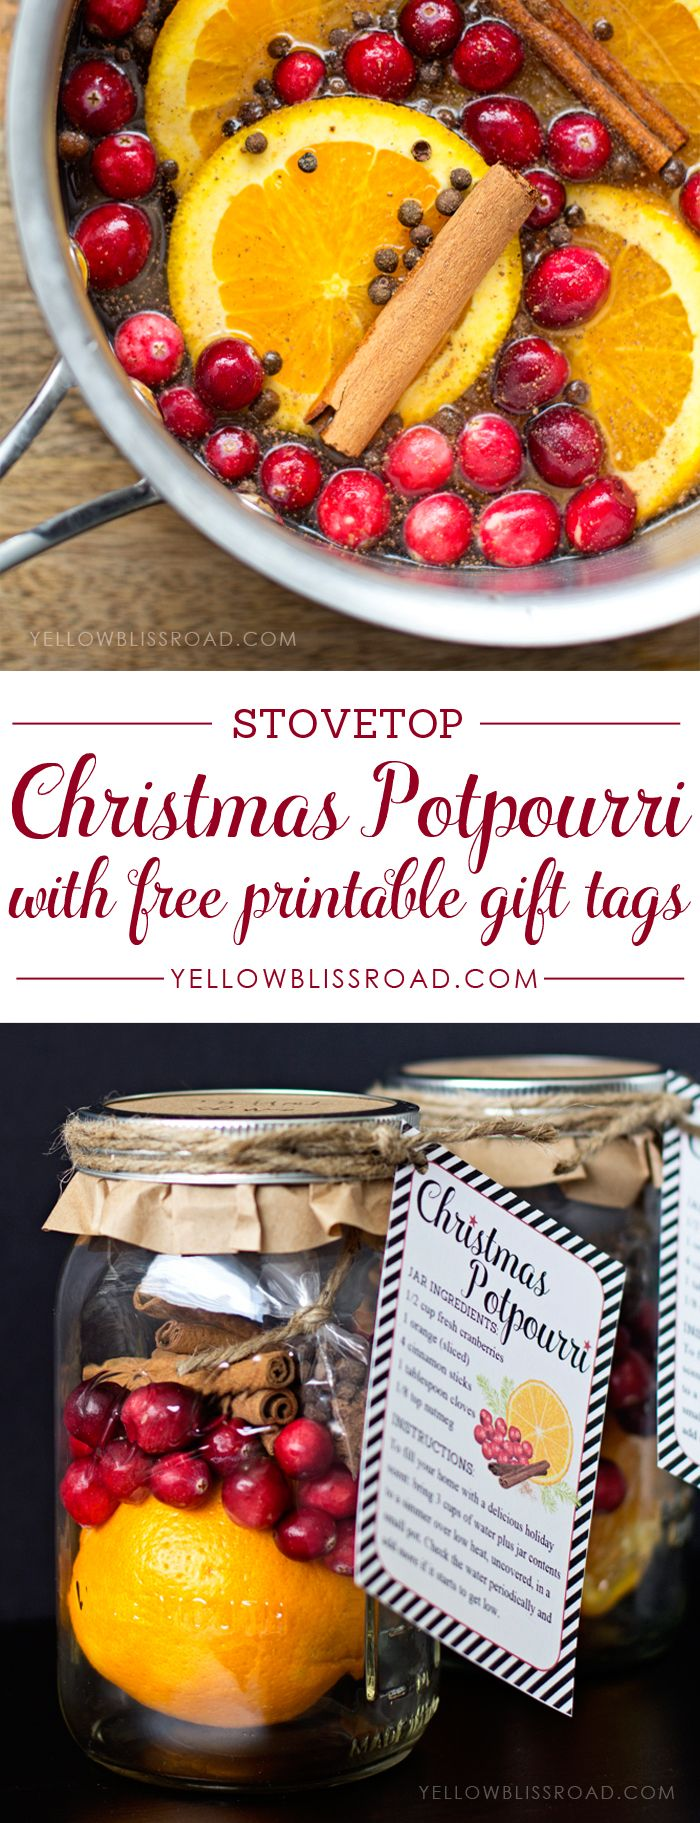 Diy christmas gift christmas potpourri in a jar with free printable